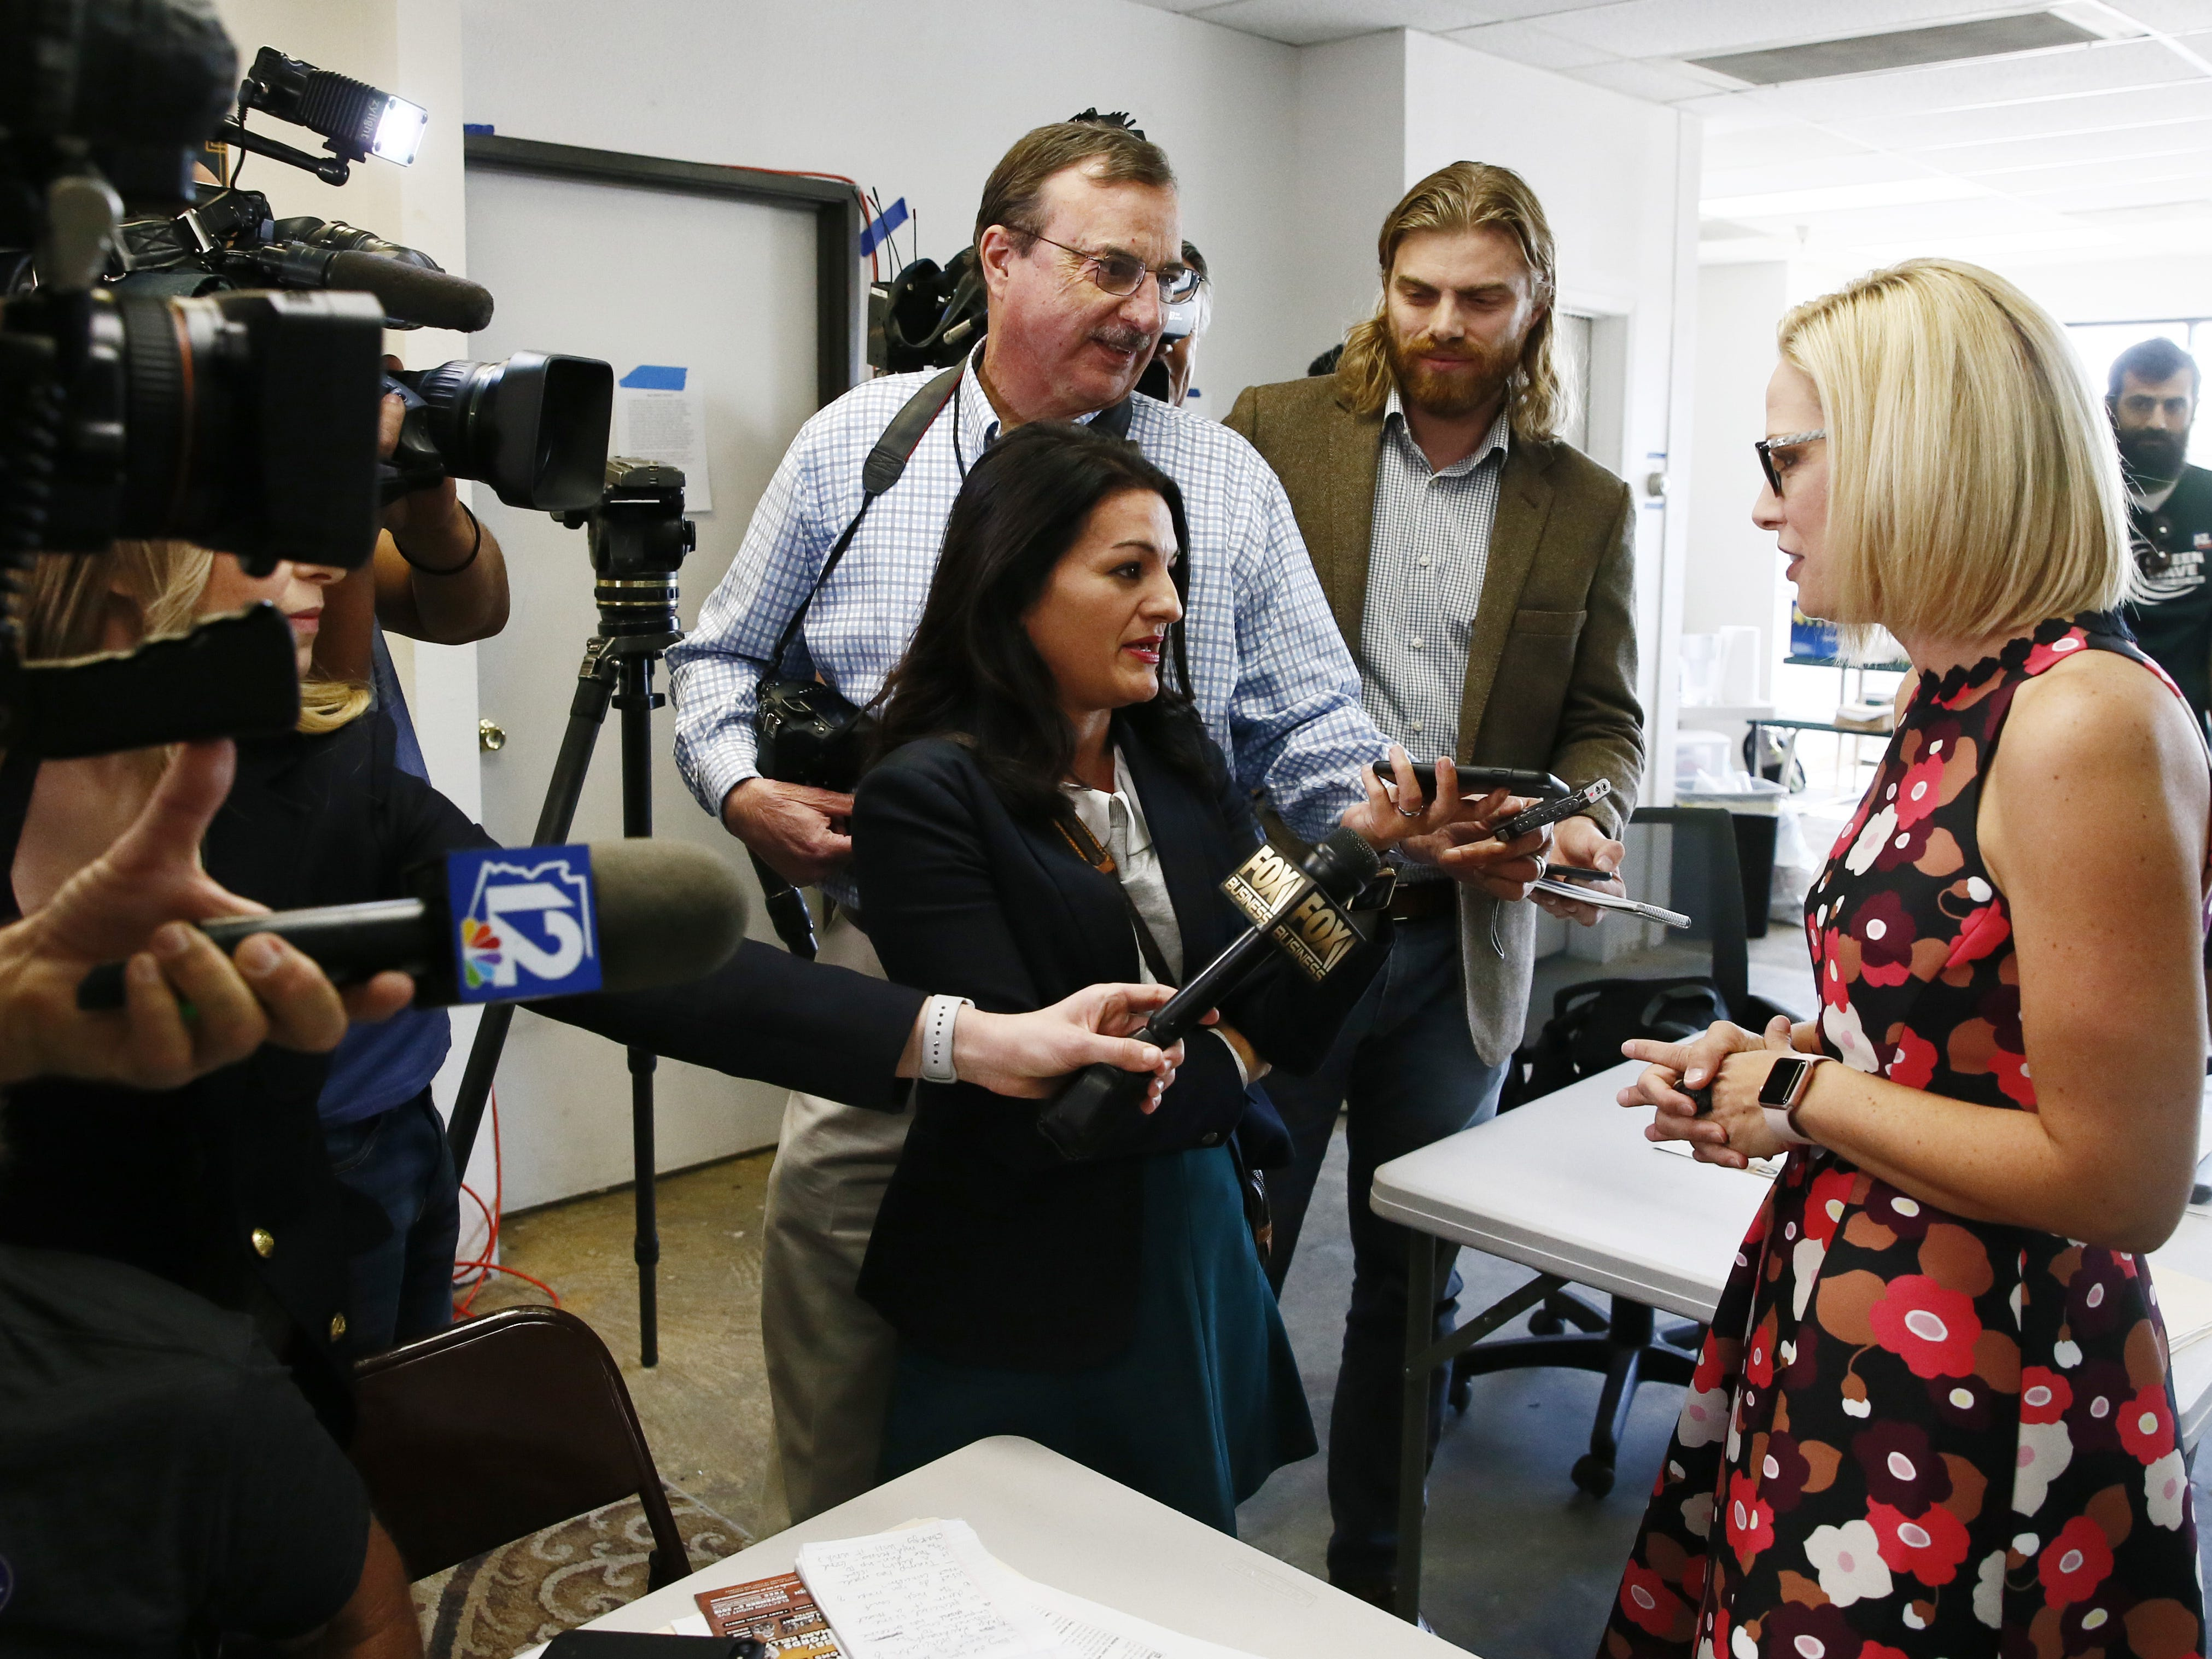 Kyrsten Sinema, the Democratic candidate for the U.S. Senate speaks to the press at a get-out-the-vote event with members of the Veterans for Sinema coalition and volunteers on Nov. 1 in Phoenix.